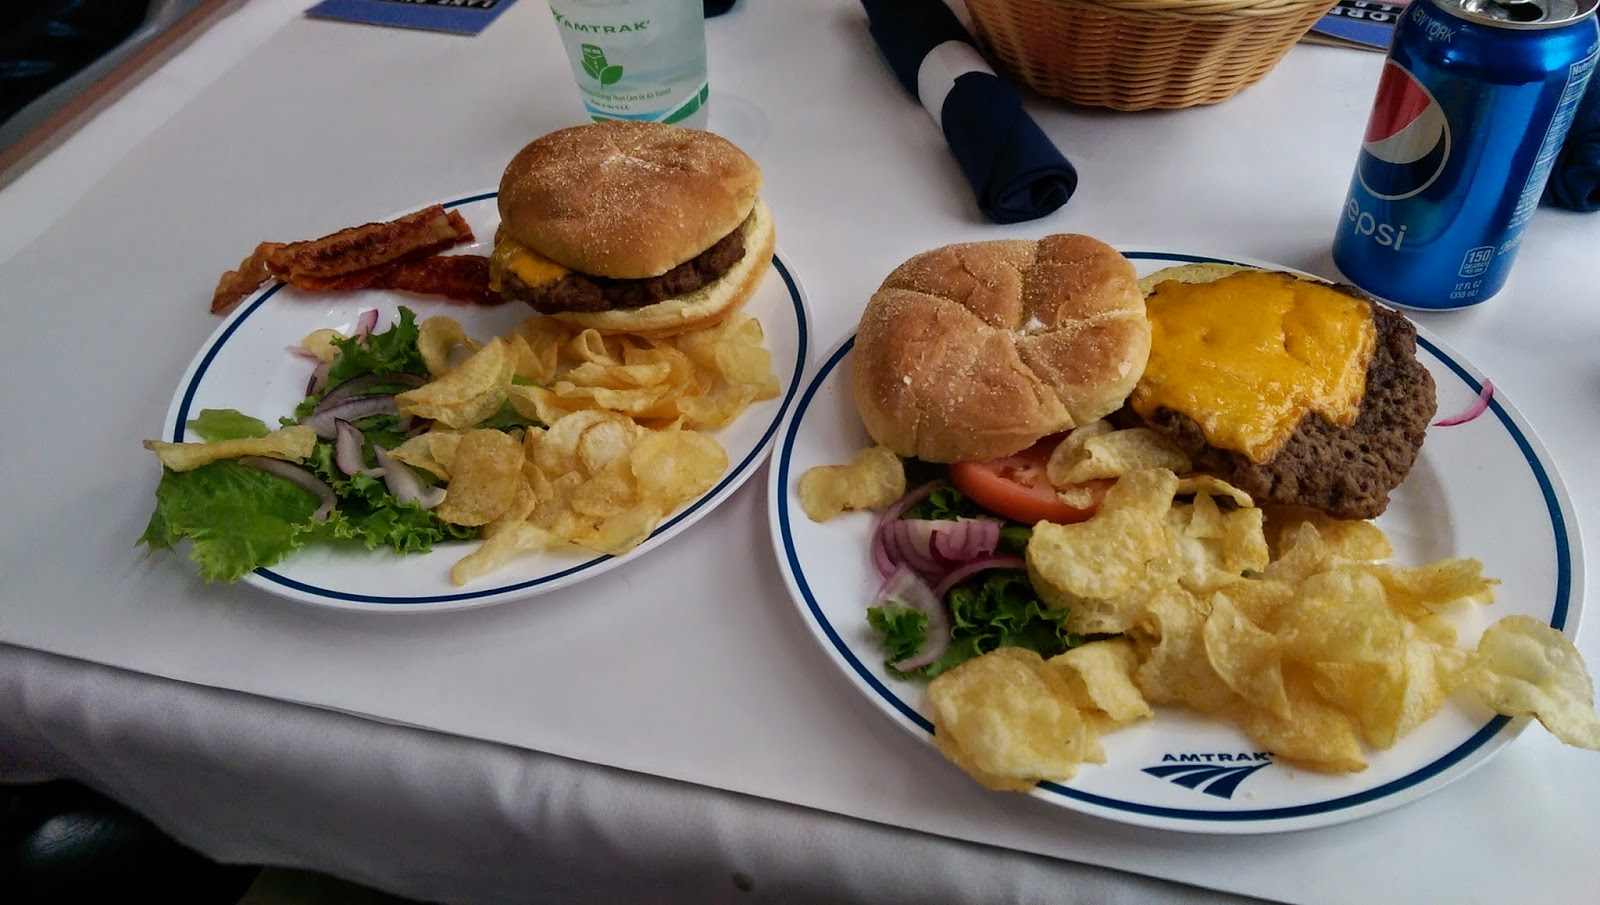 Lunch on Amtrak train